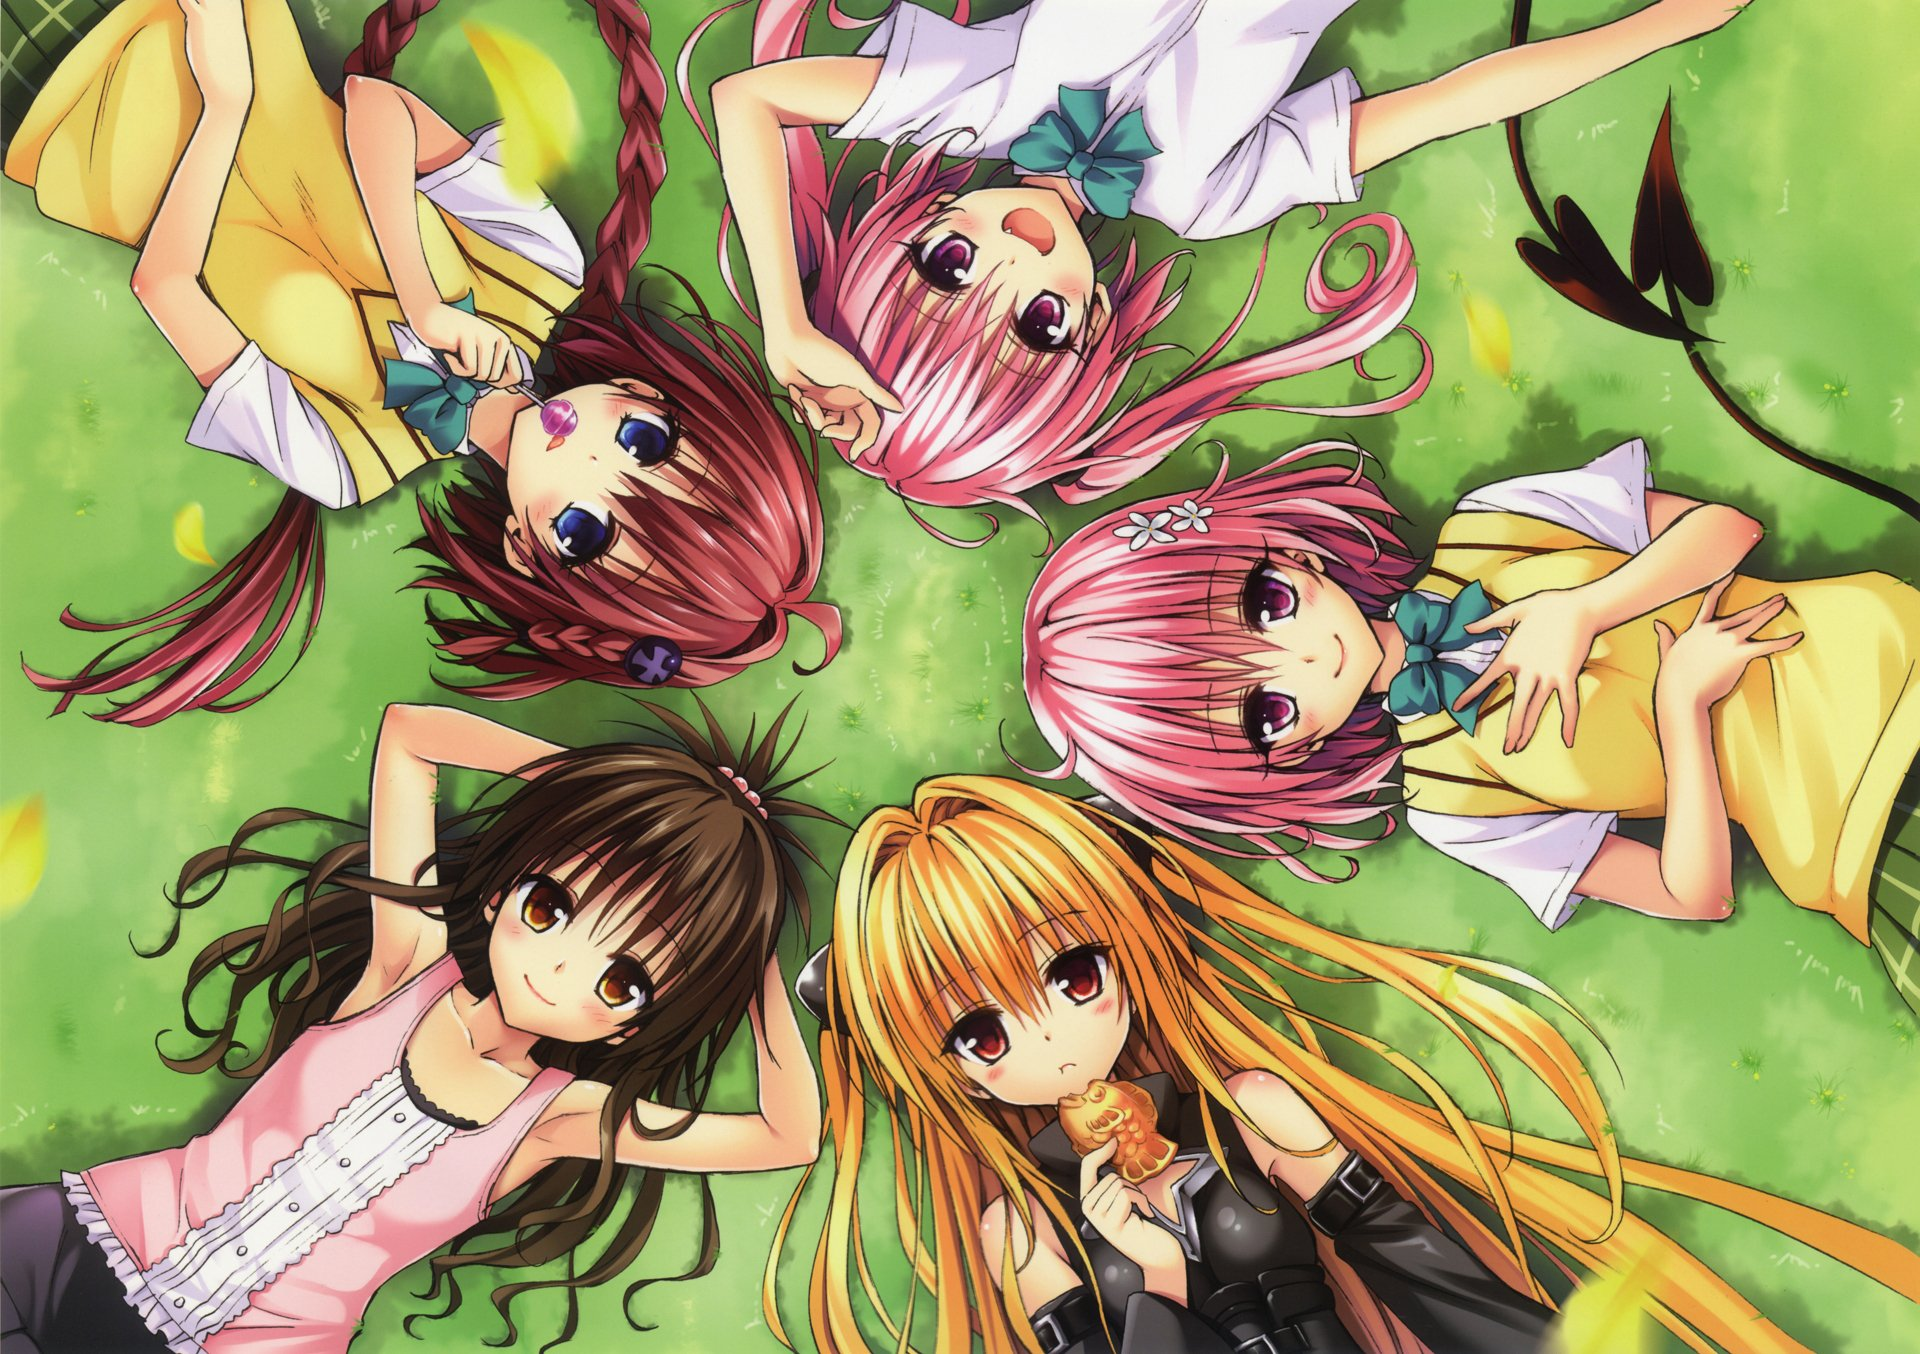 Wallpaper Hd To Love Ru Darkness : To Love-Ru Group Full HD Wallpaper and Background Image 1920x1354 ID:675098